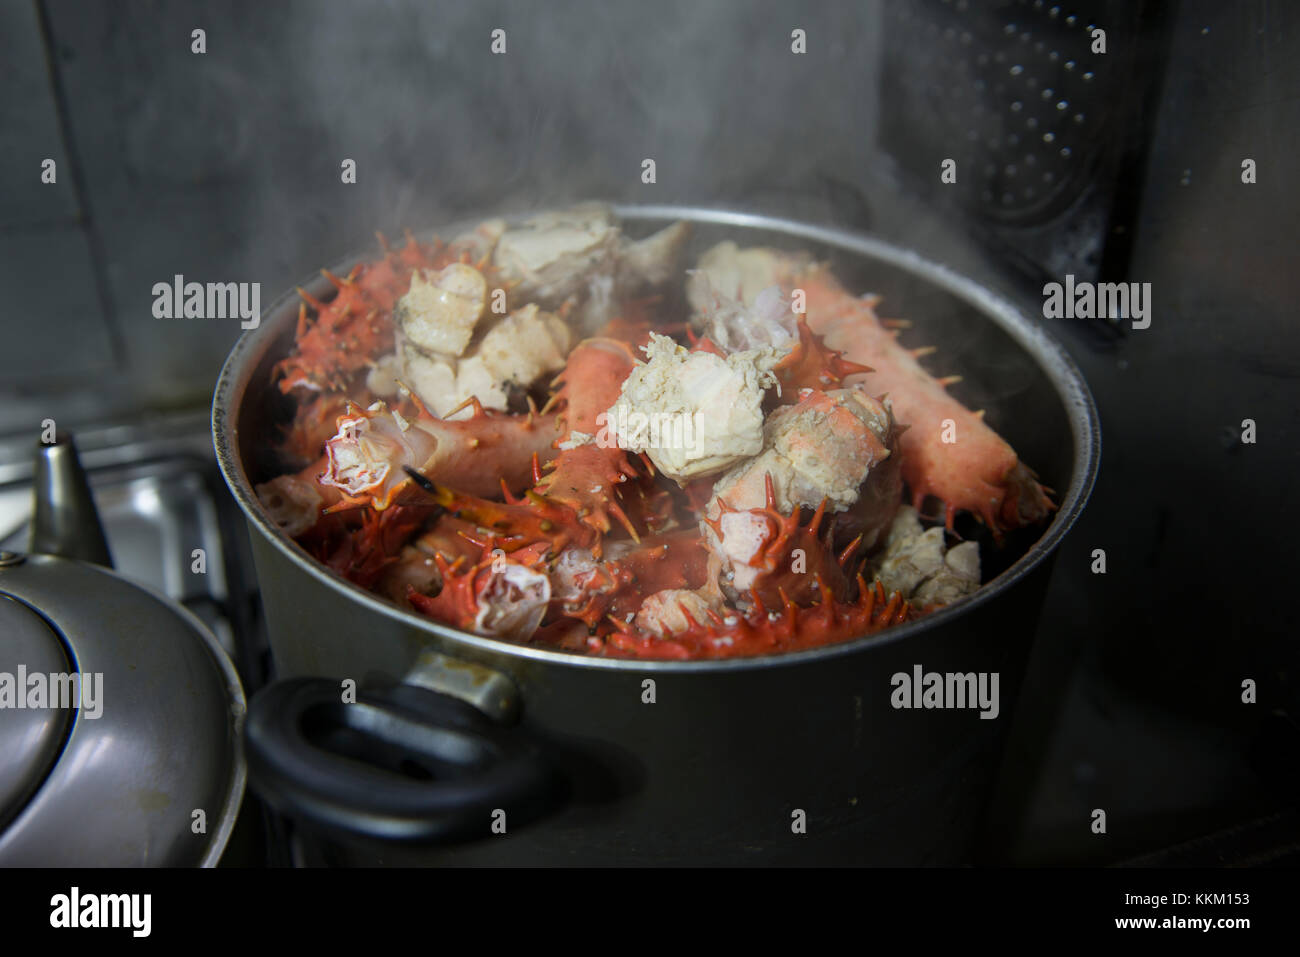 Southern King Crab legs cooking in a pot - Stock Image